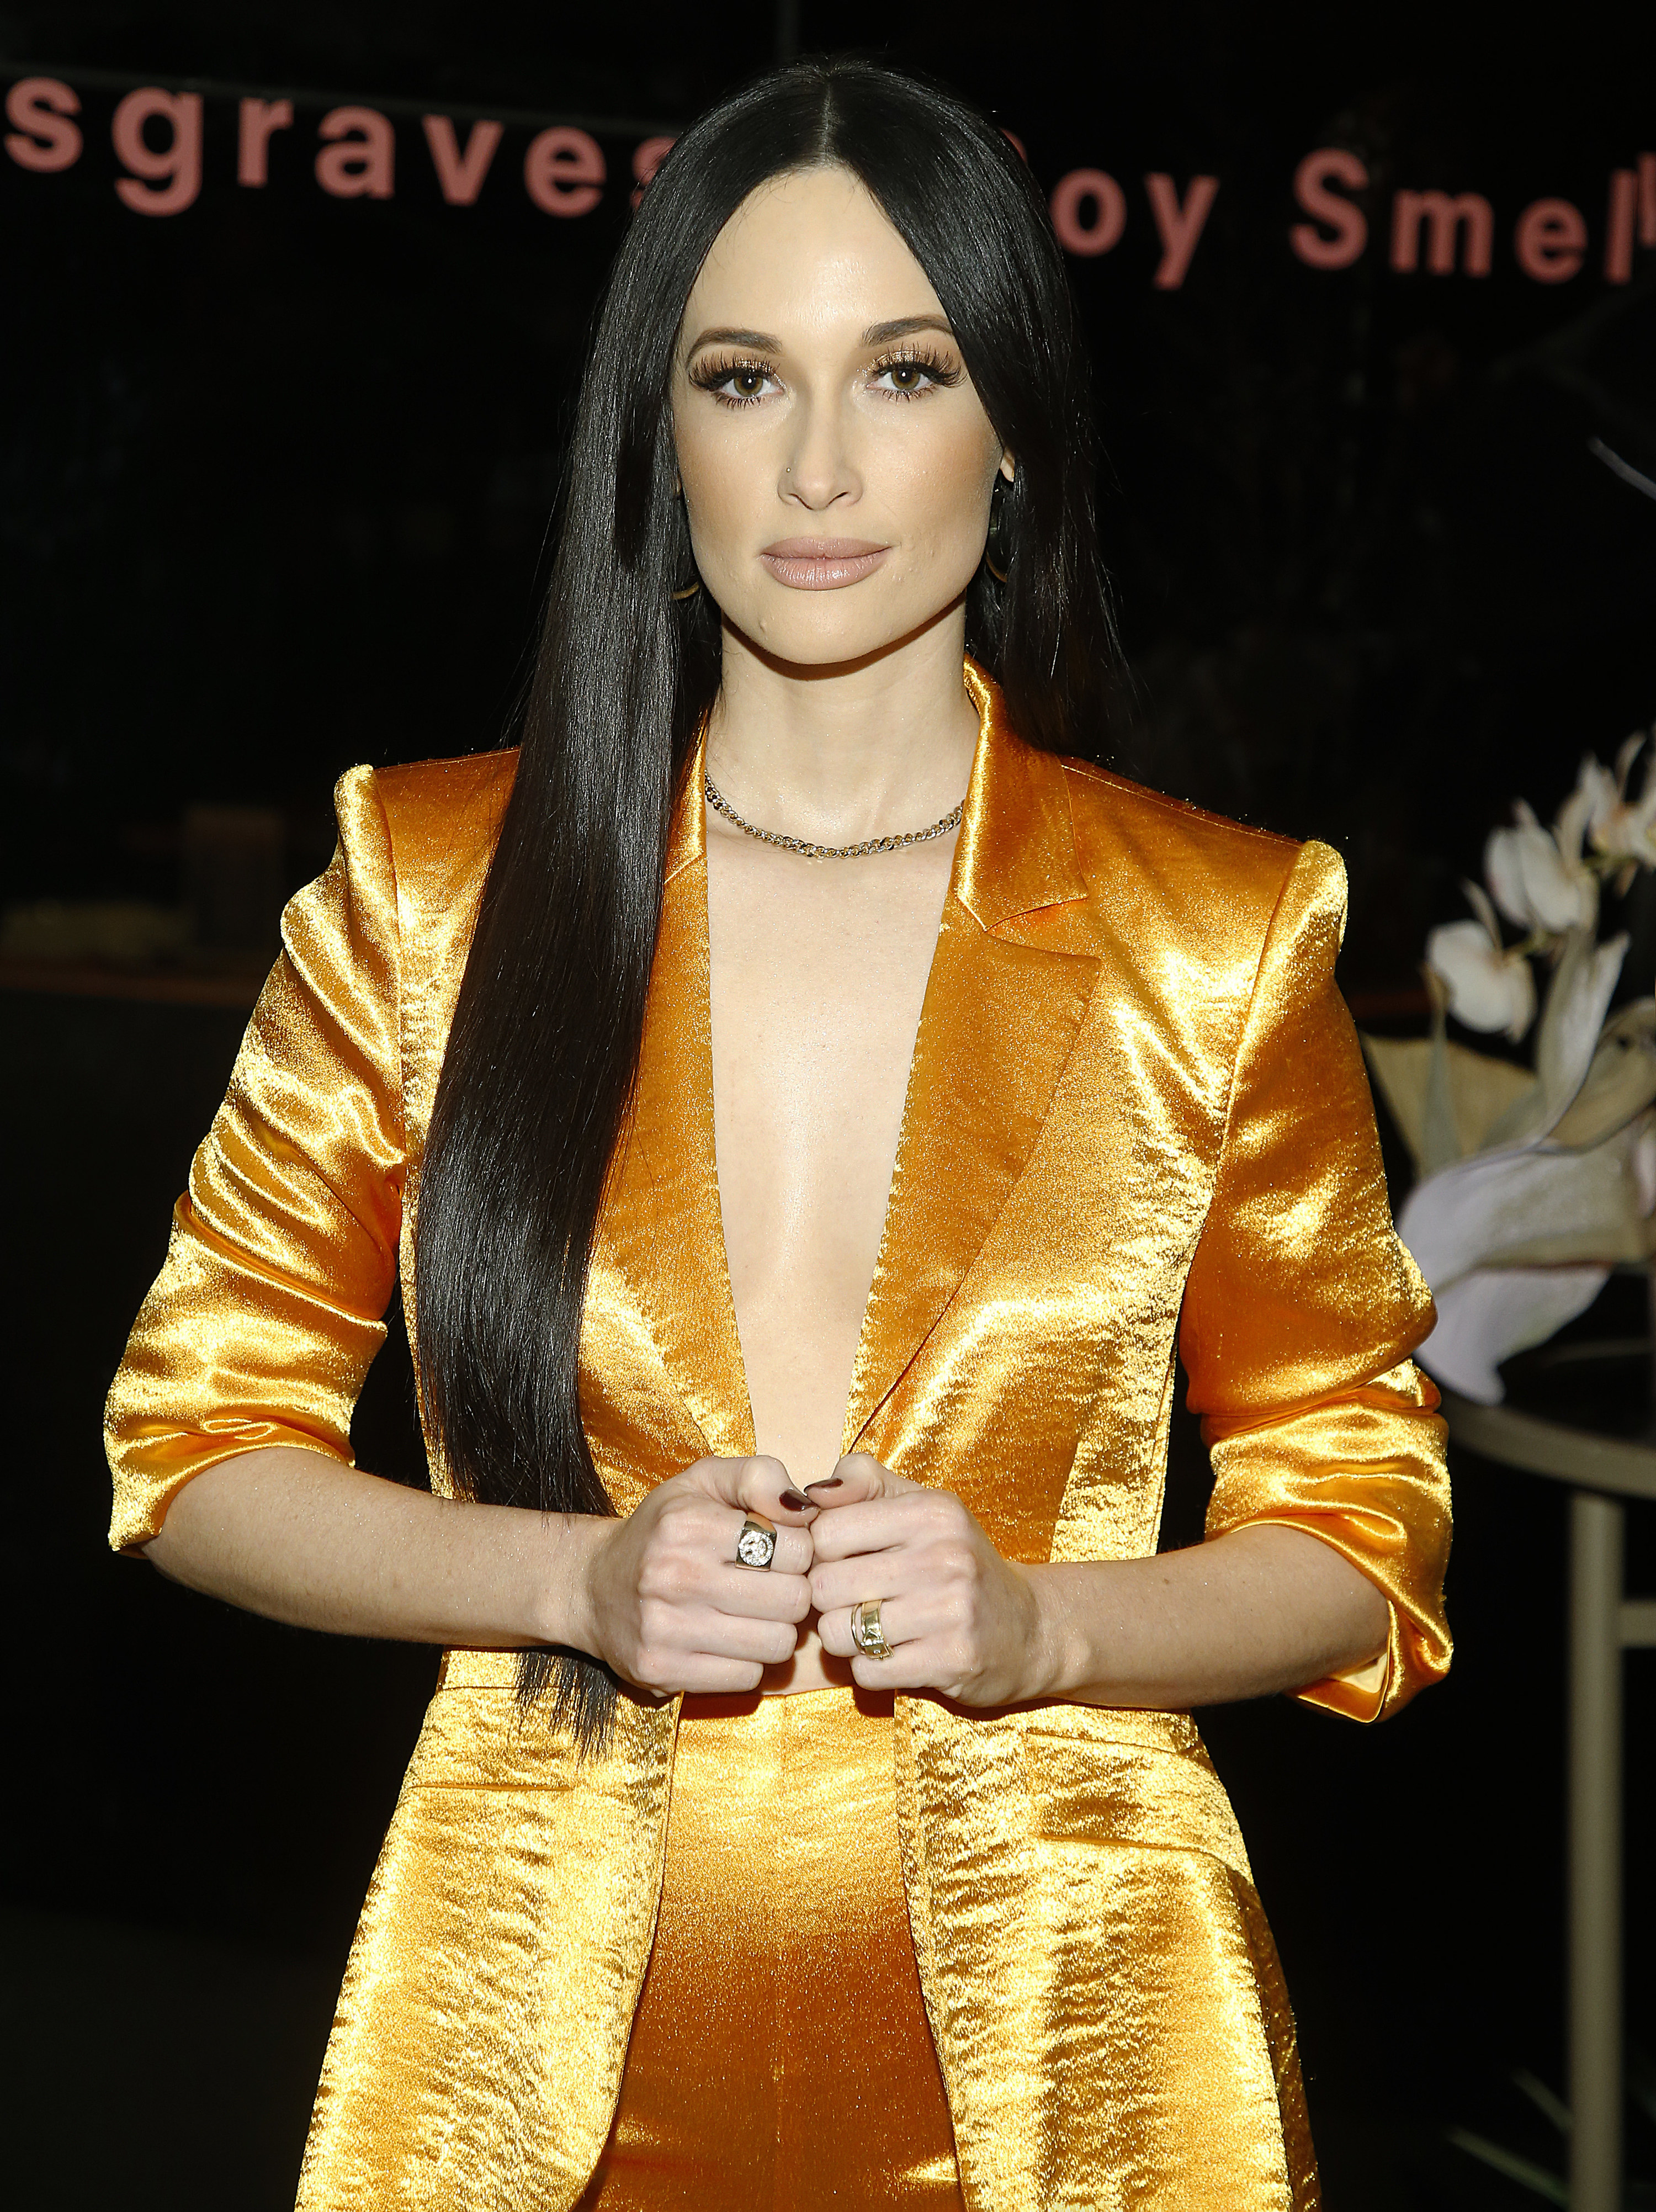 Kacey at a even wearing a gold suit